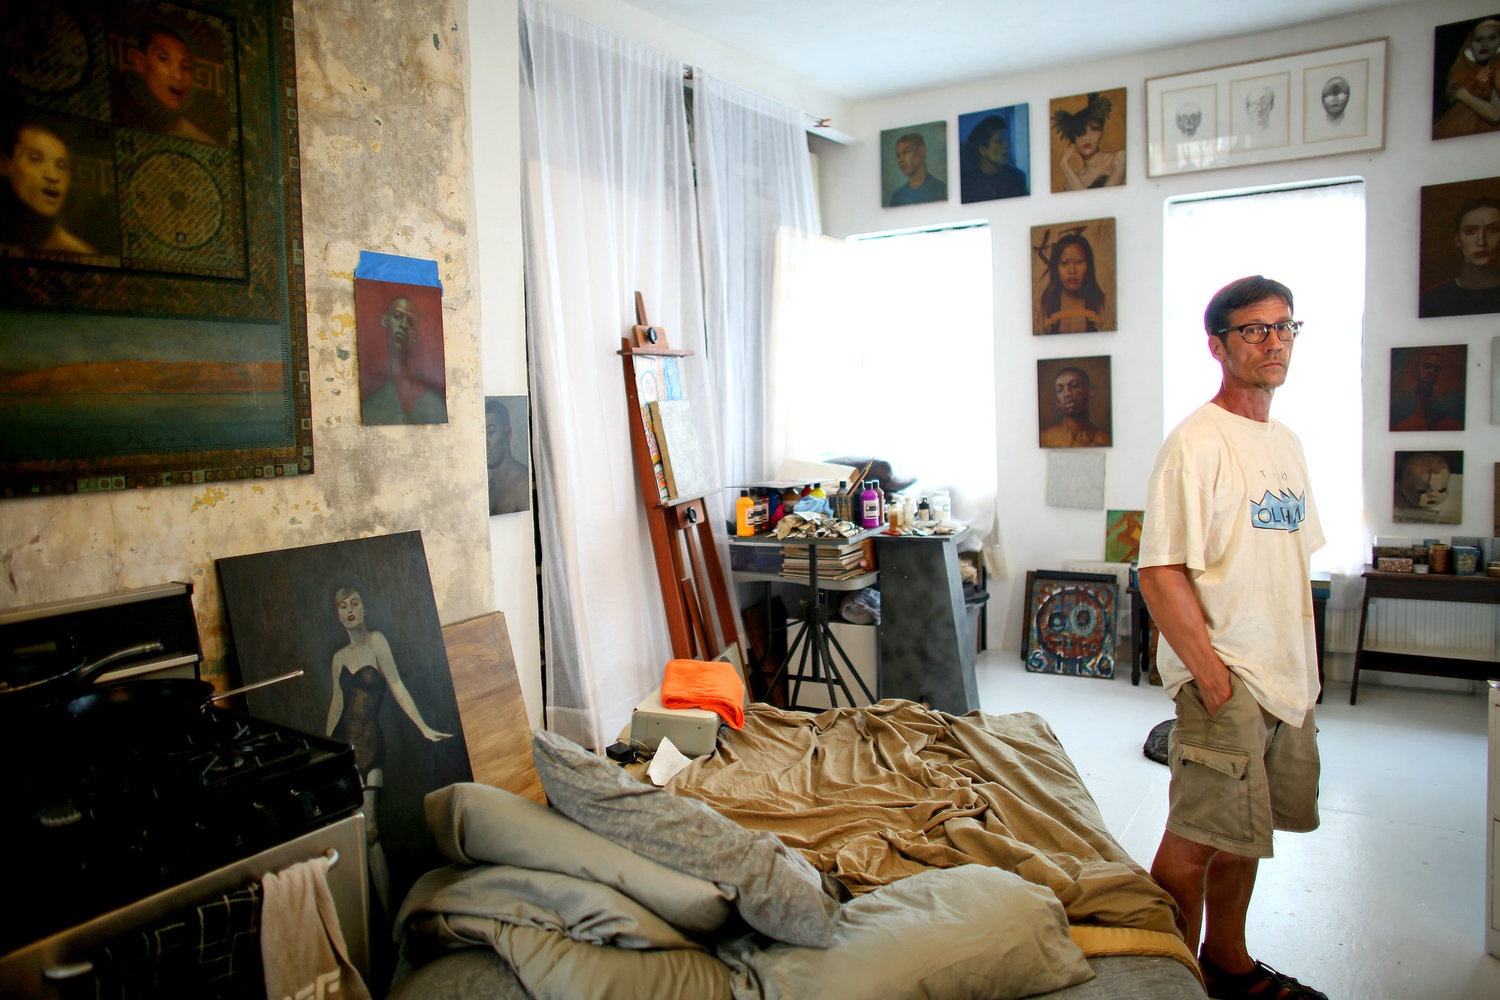 Steven Ashmore, inside his apartment in Umbrella House, was one of a handful of squatters who used a sledgehammer to break into the building in 1988.